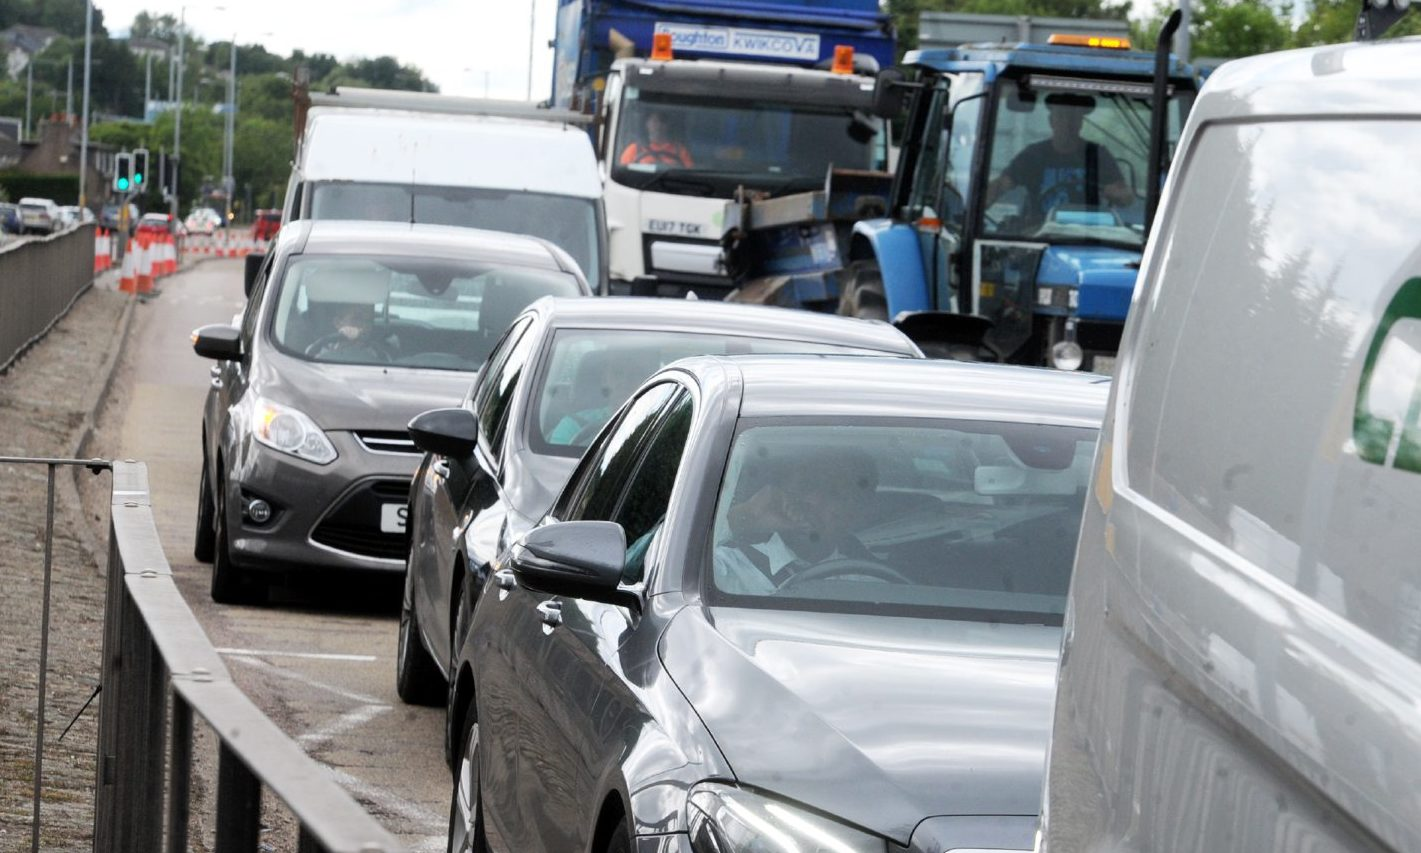 Traffic queued at the Haudagain roundabout, where work has been delayed.